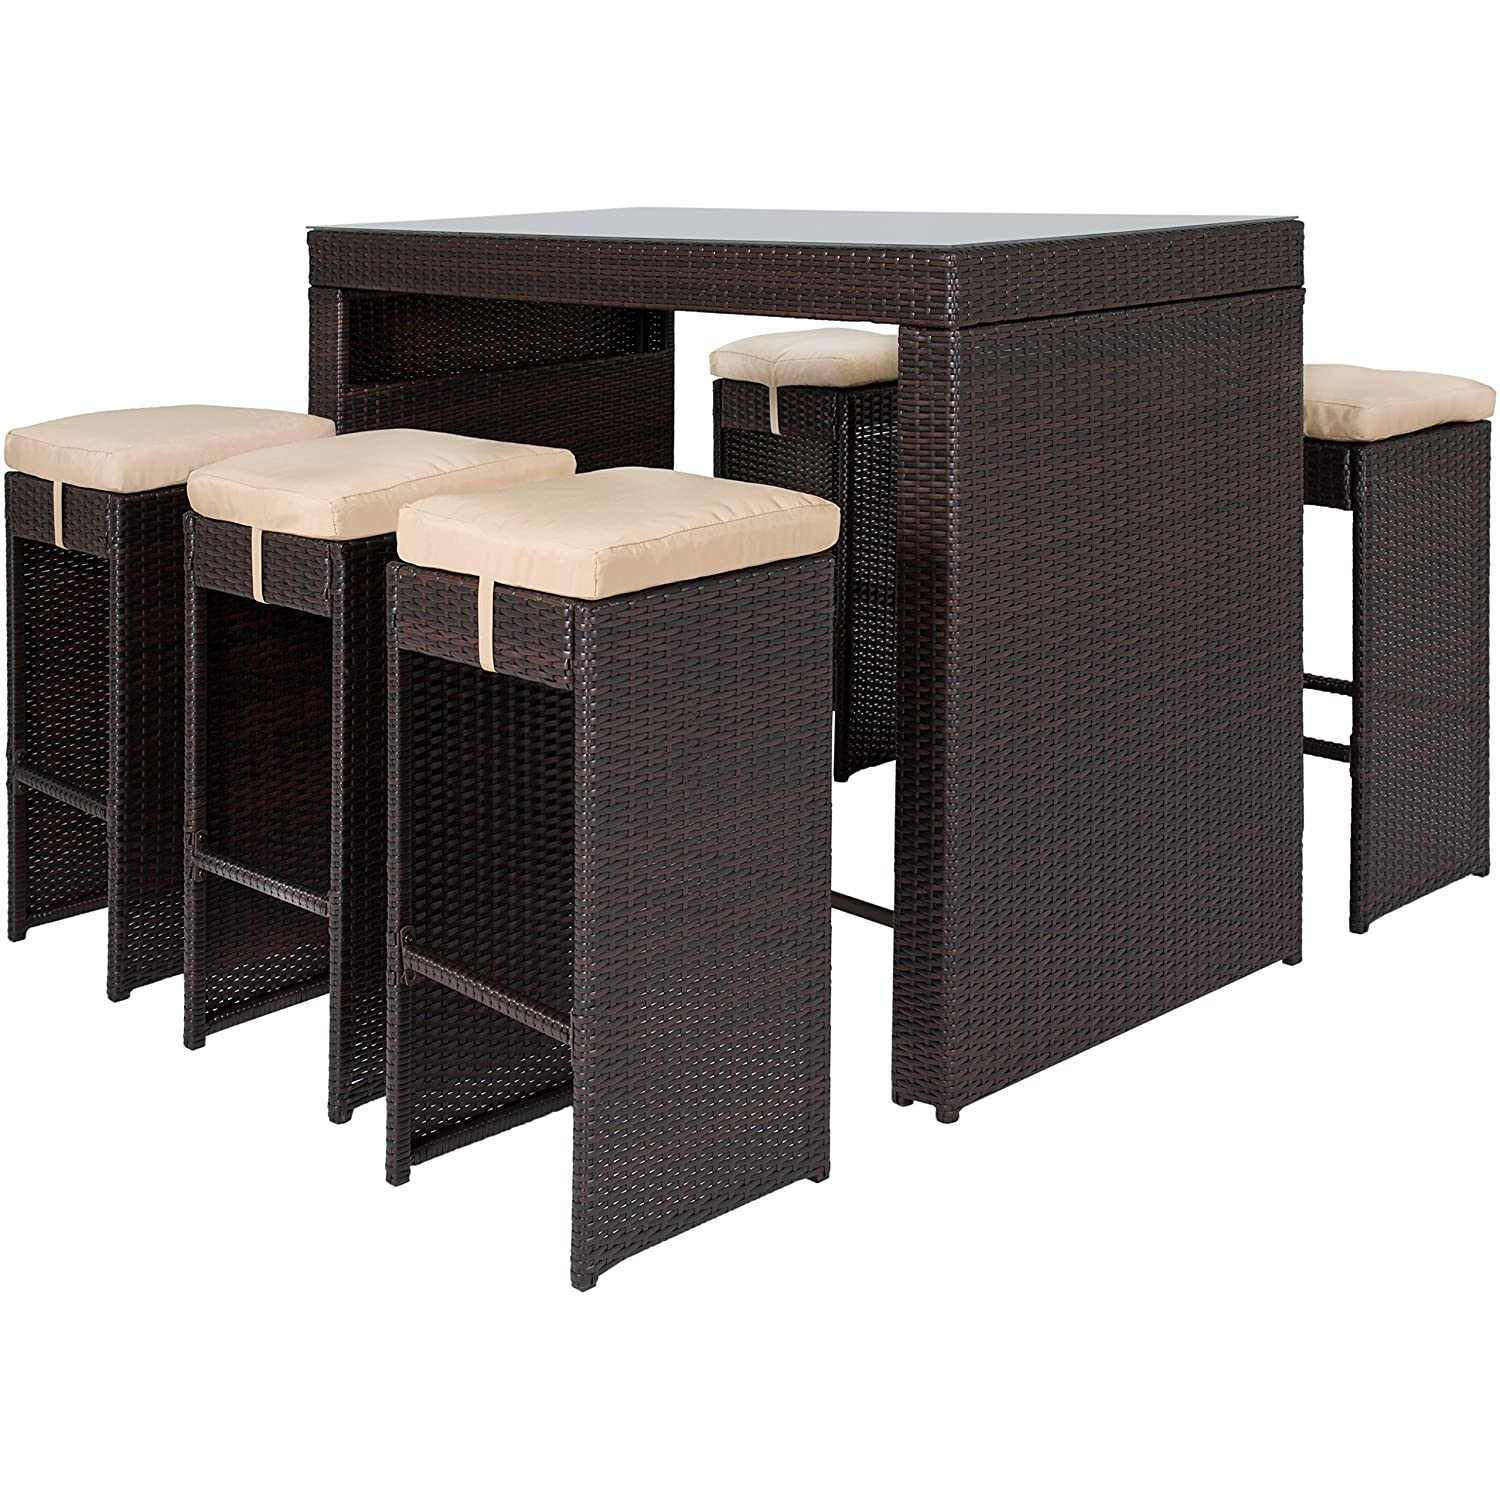 Rattan Table Set Part - 32: Amazon.com : Best Choice Products 7pc Rattan Wicker Barstool Dining Table  Set Bar Stool Brown : Patio, Lawn U0026 Garden